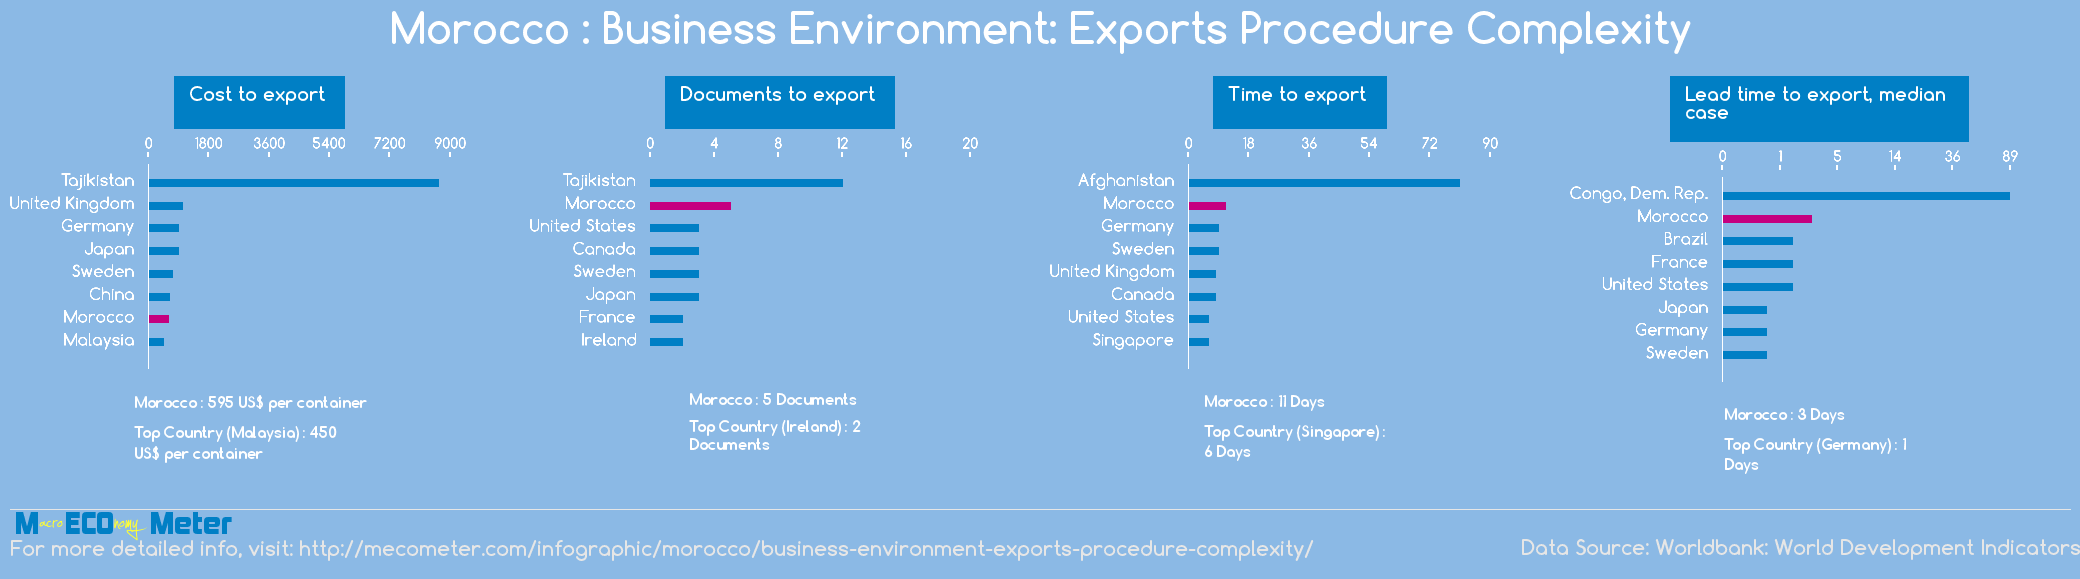 Morocco : Business Environment: Exports Procedure Complexity